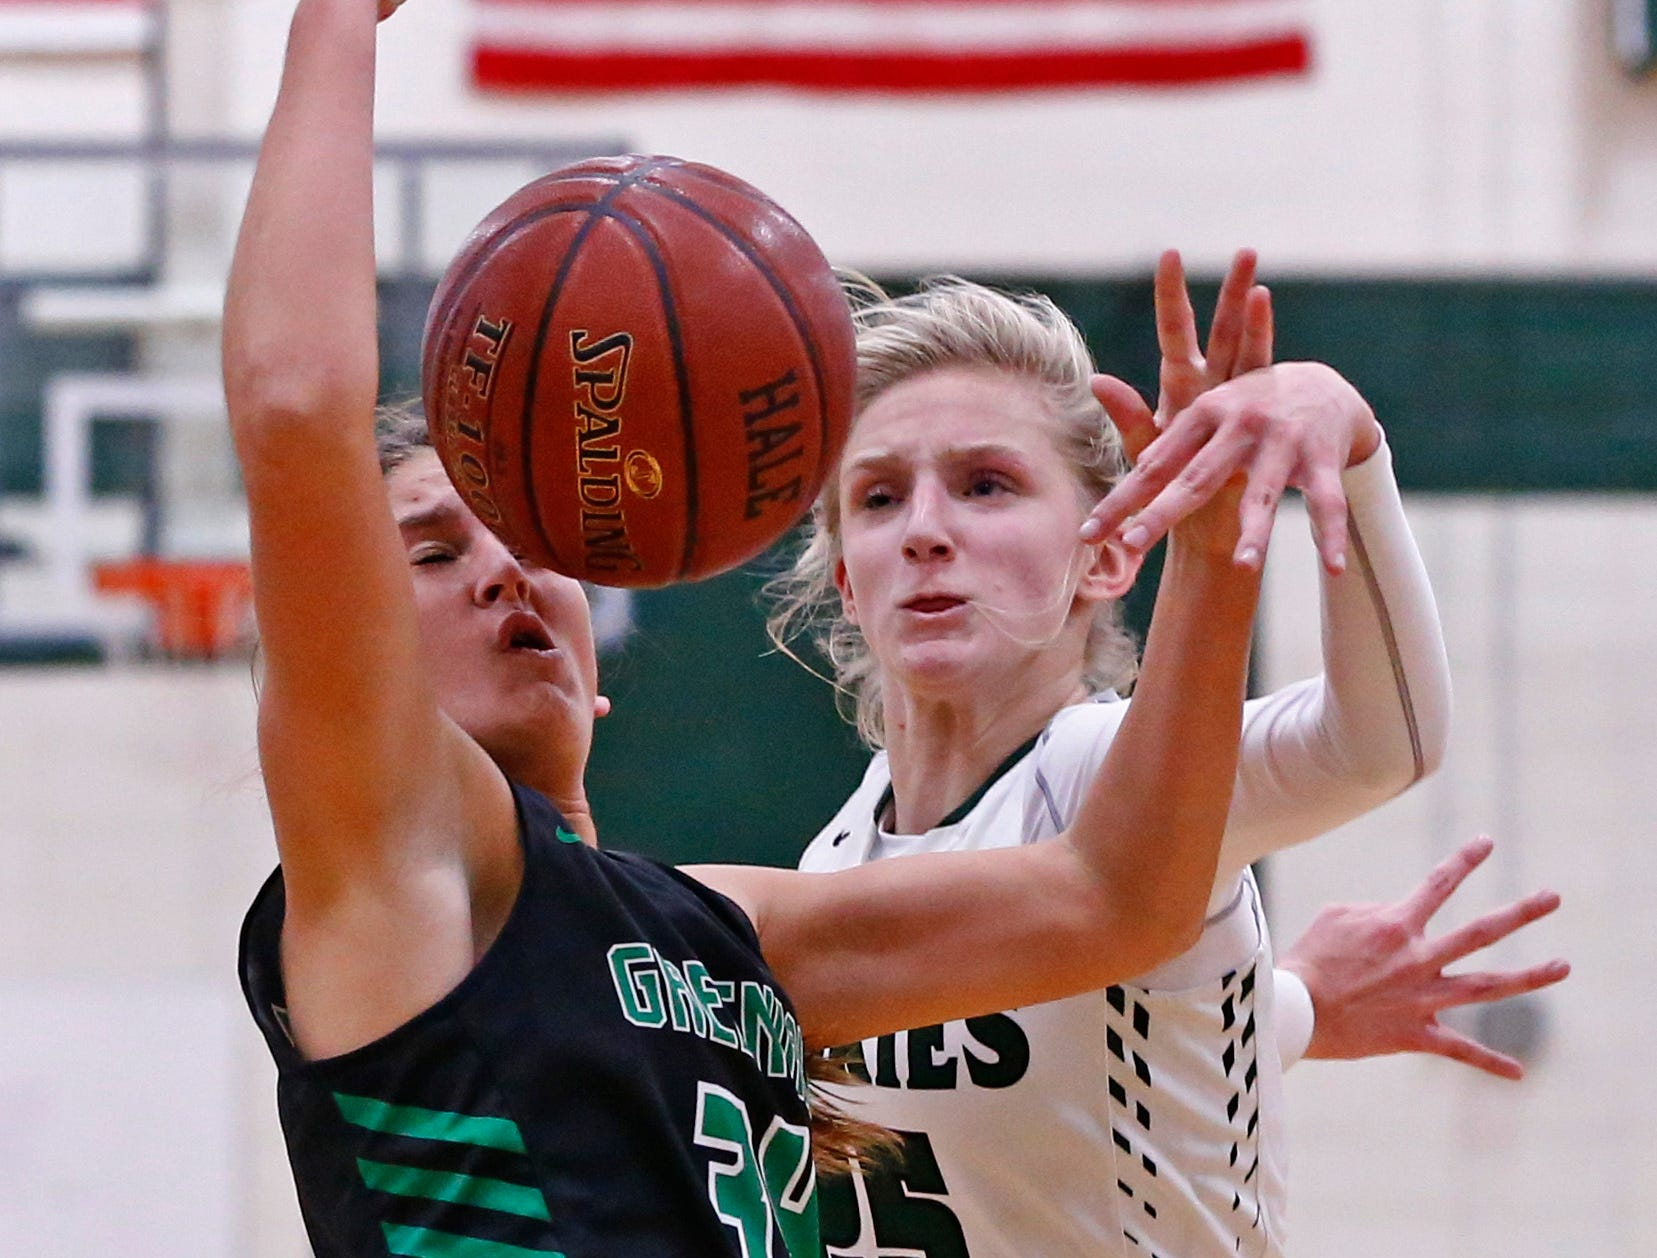 West Allis Hale's Abi Stevens blocks Greendale's Kaitlyn Delong's shot at Hale on Nov. 13